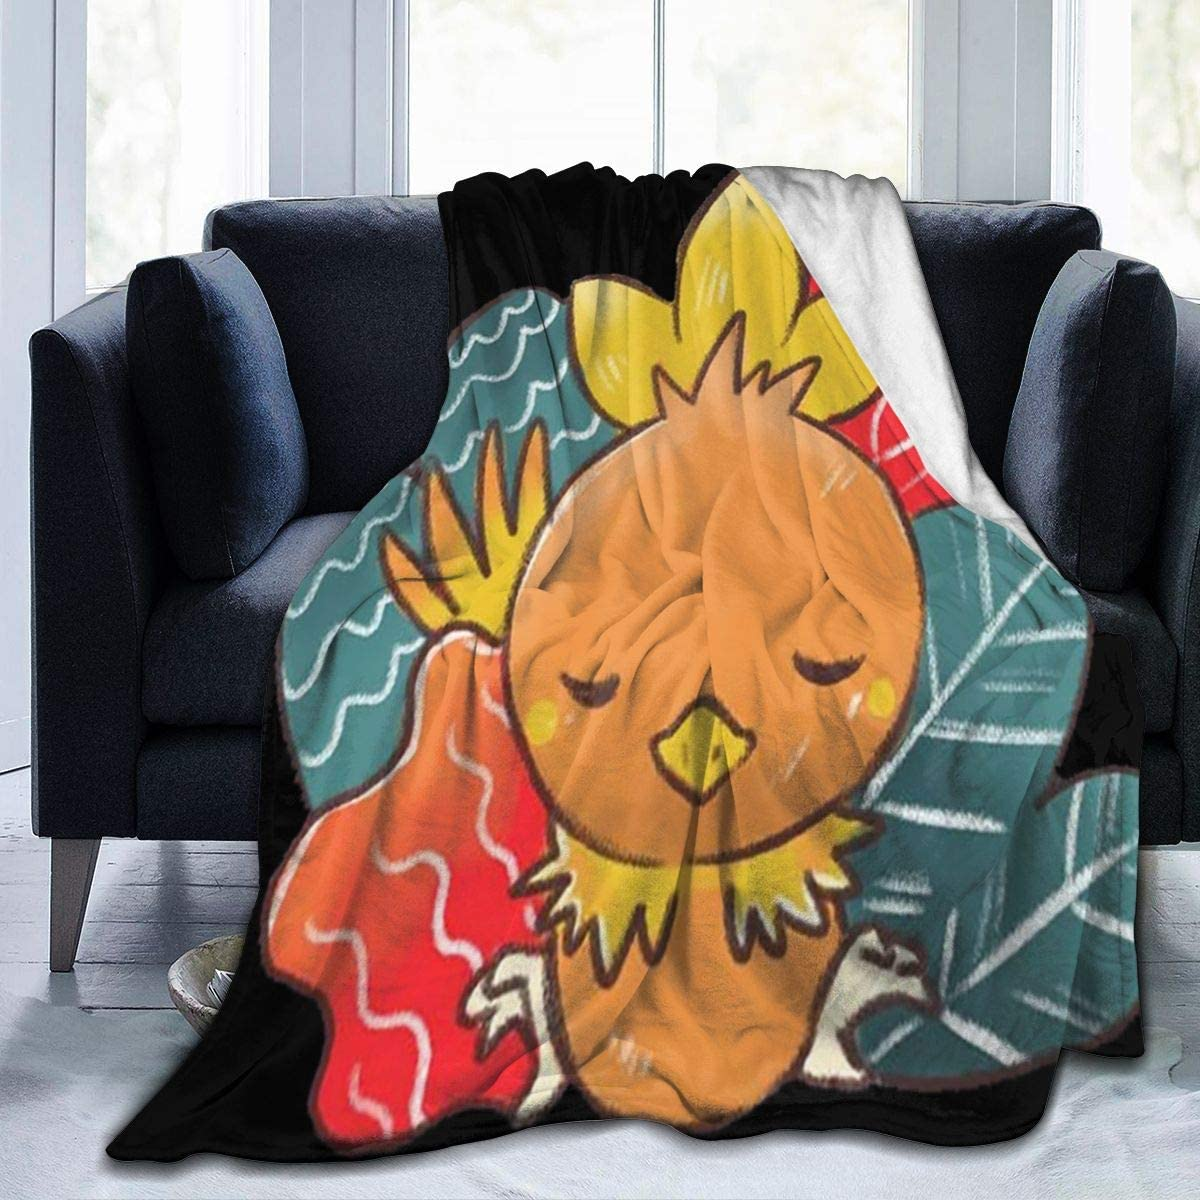 Poke-mon Sleeping Torchic Fleece Blanket Ultra-Soft Lightweight All Seasons Fit Bed Couch Chair Office Flight and Outdoors